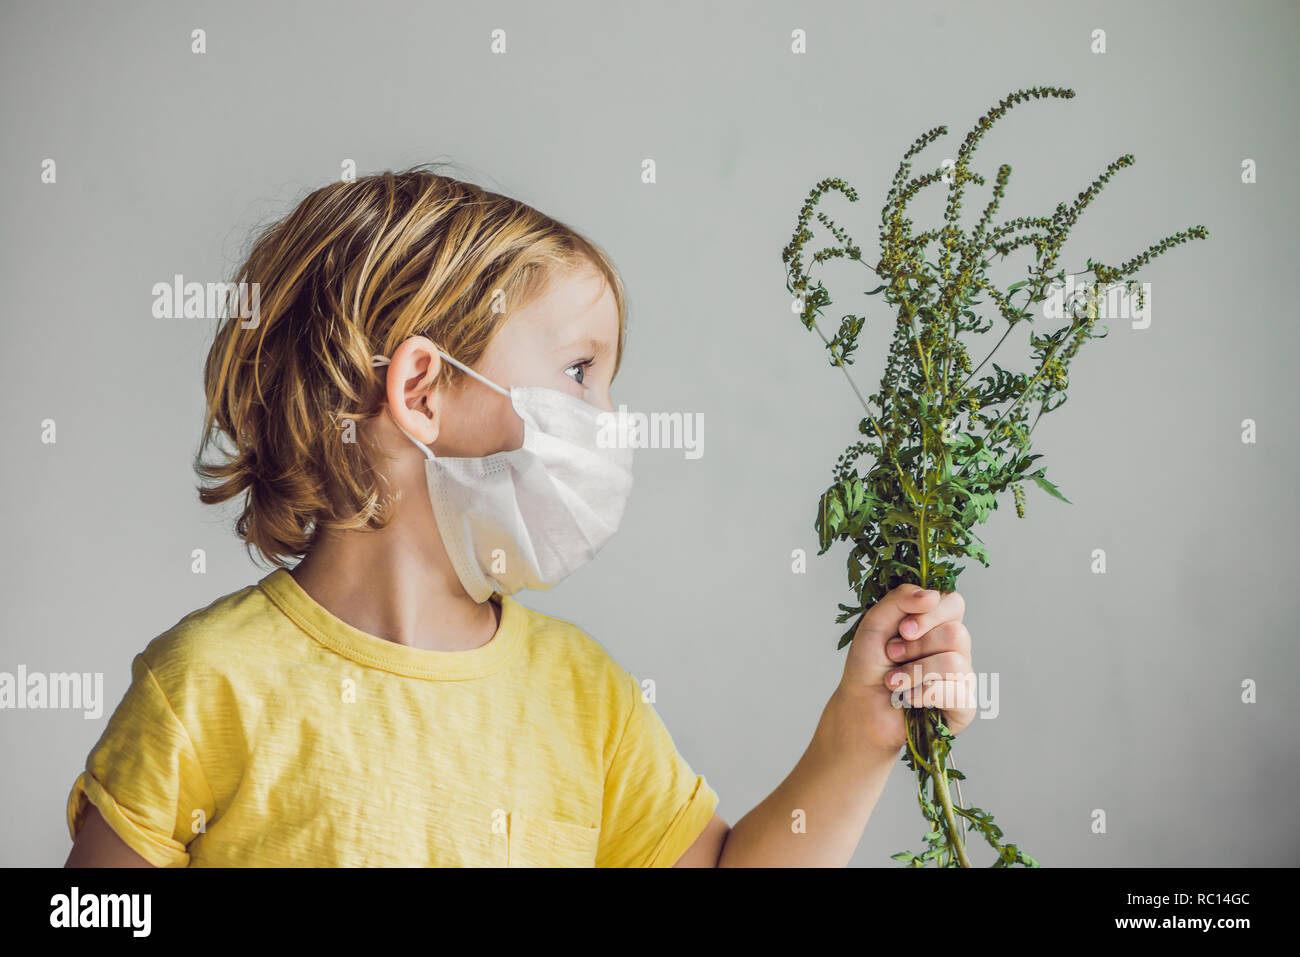 The boy is allergic to ragweed. In a medical mask, he holds a ragweed bush in his hands. Allergy to ambrosia concept. Stock Photo